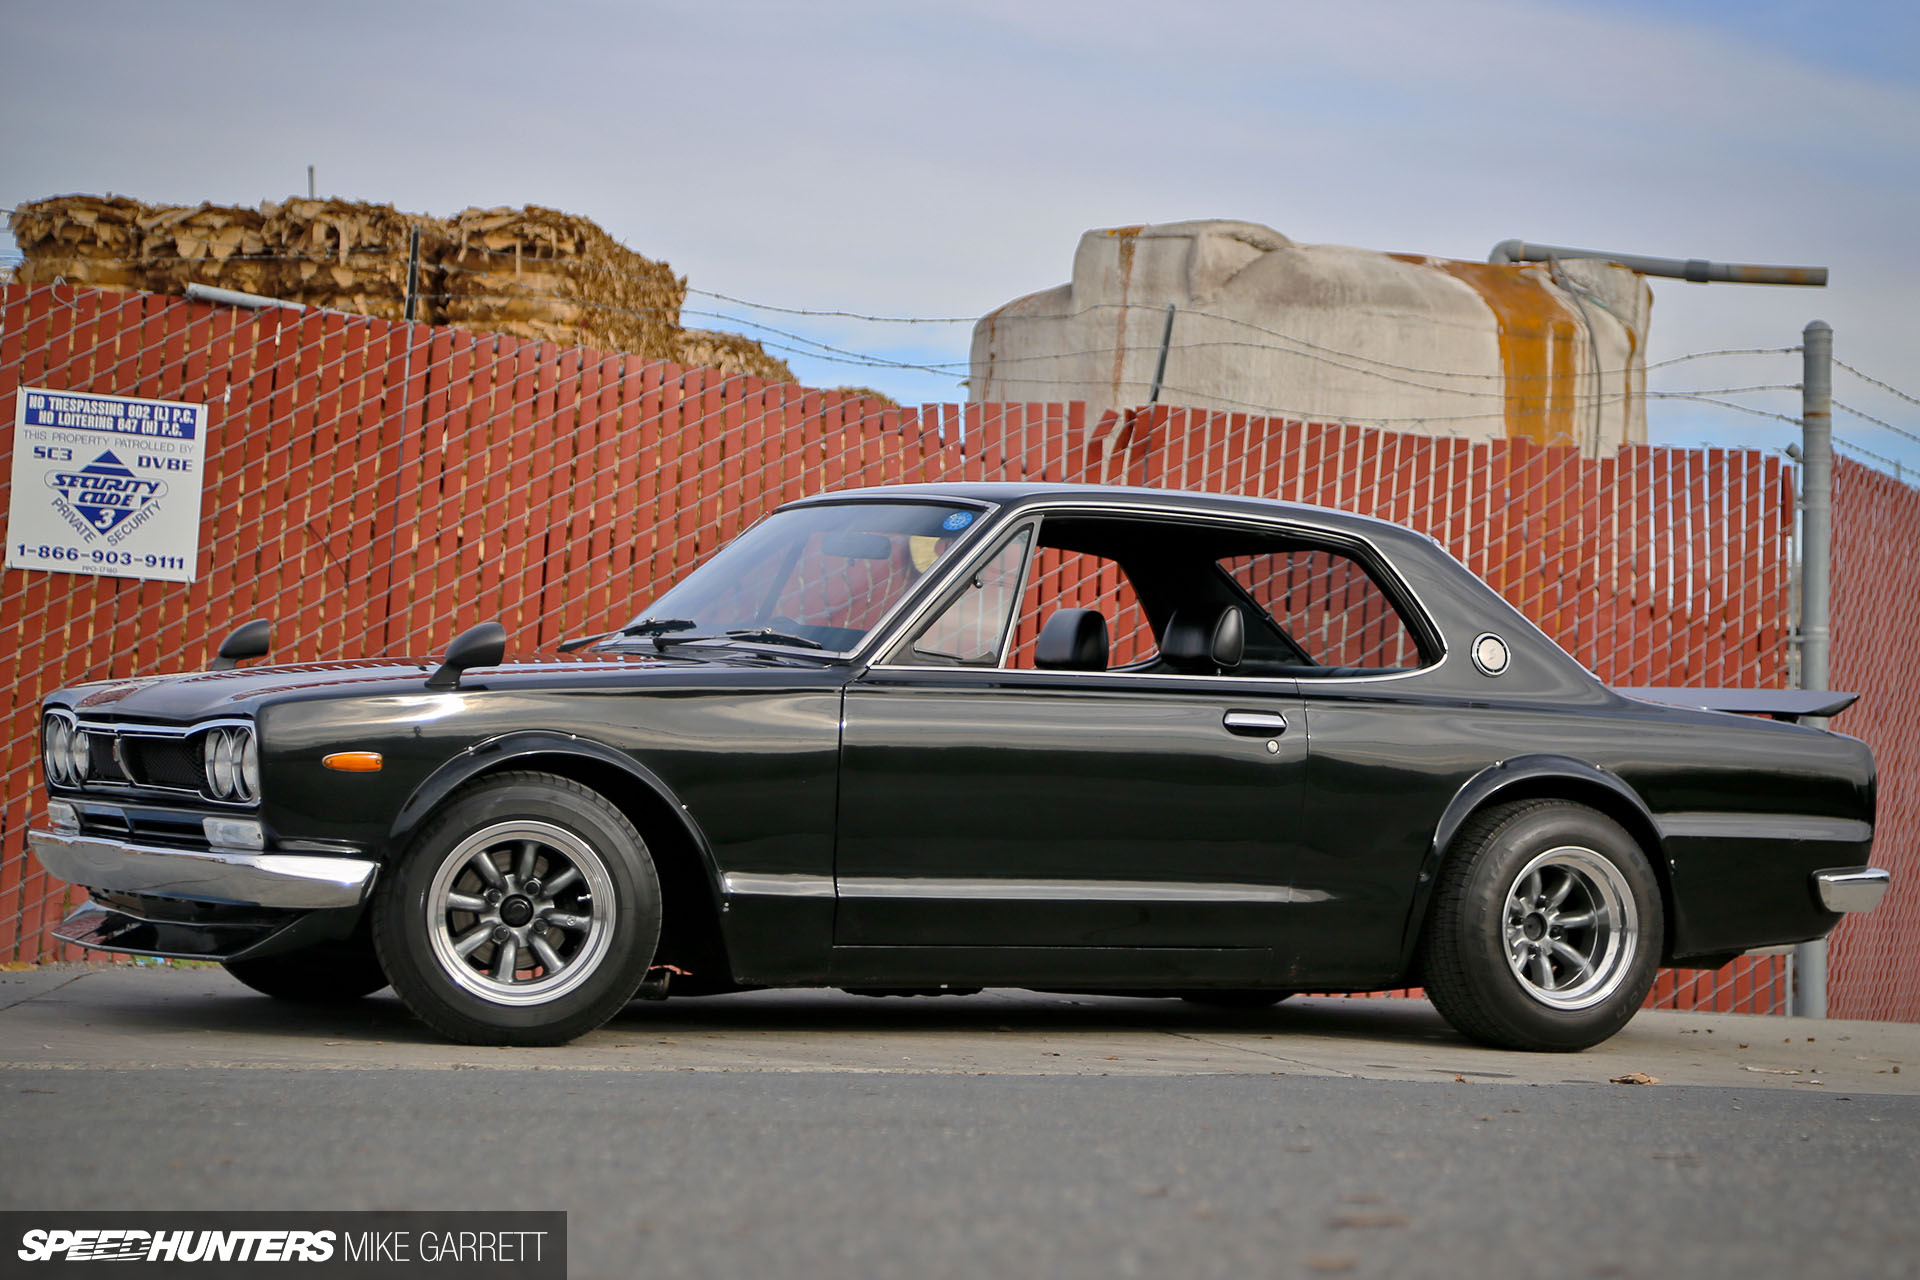 The Fast And The Furious Cars Wallpaper Collection Z Car Blog 187 Post Topic 187 Hakosuka Skyline Finds A New Home